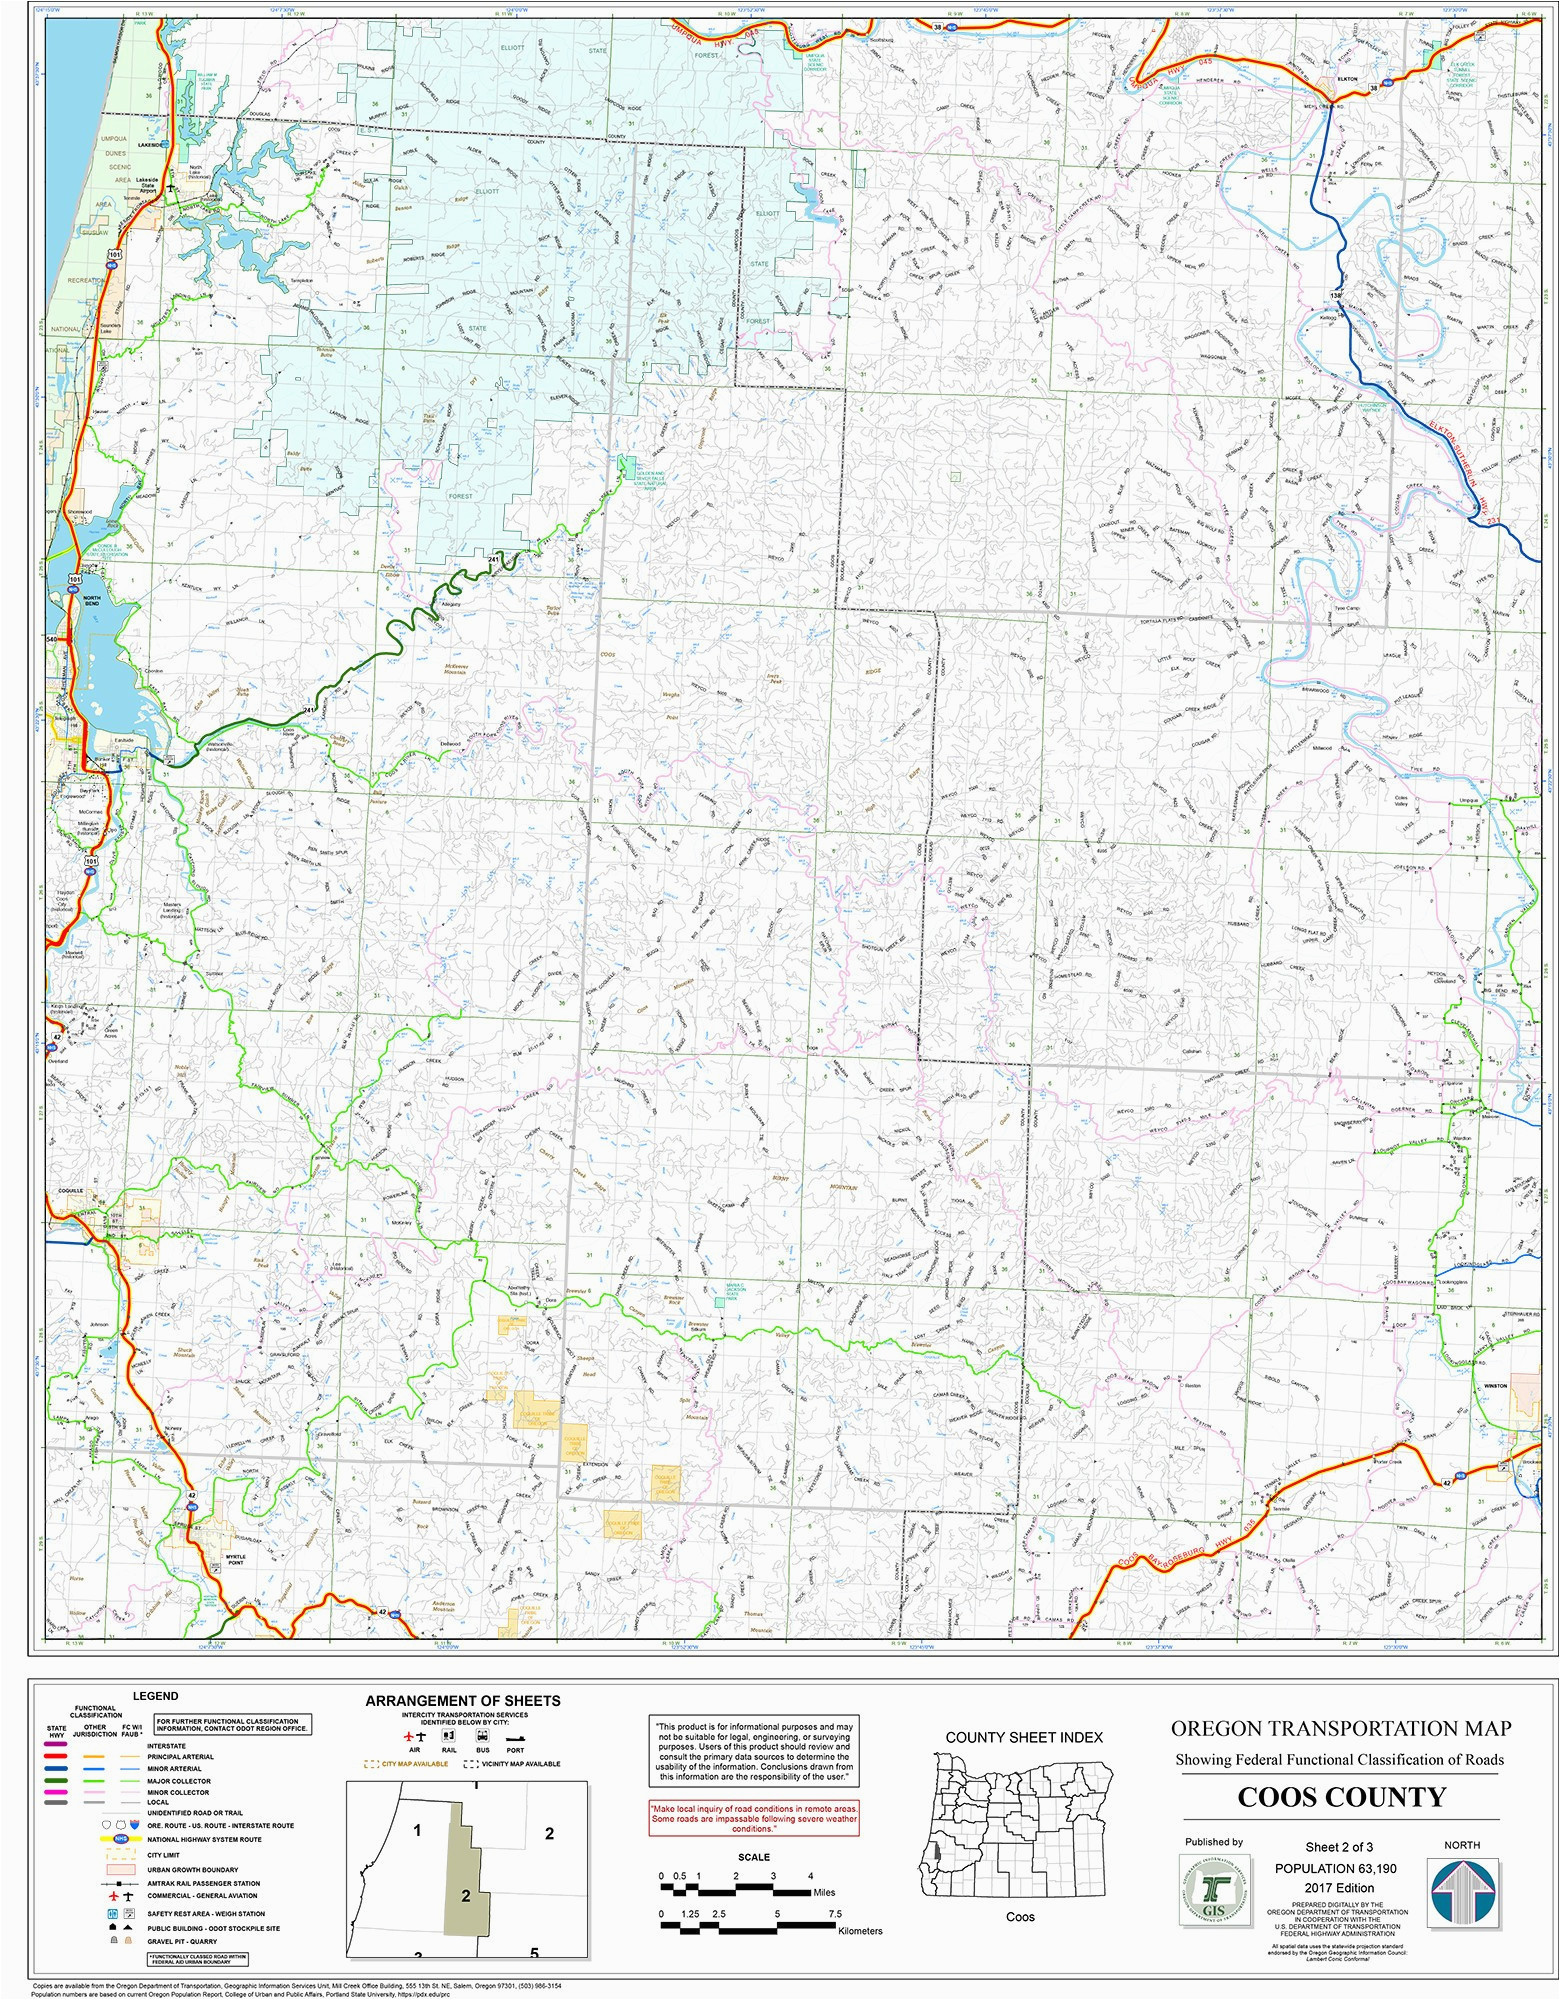 sprint coverage map maps driving directions